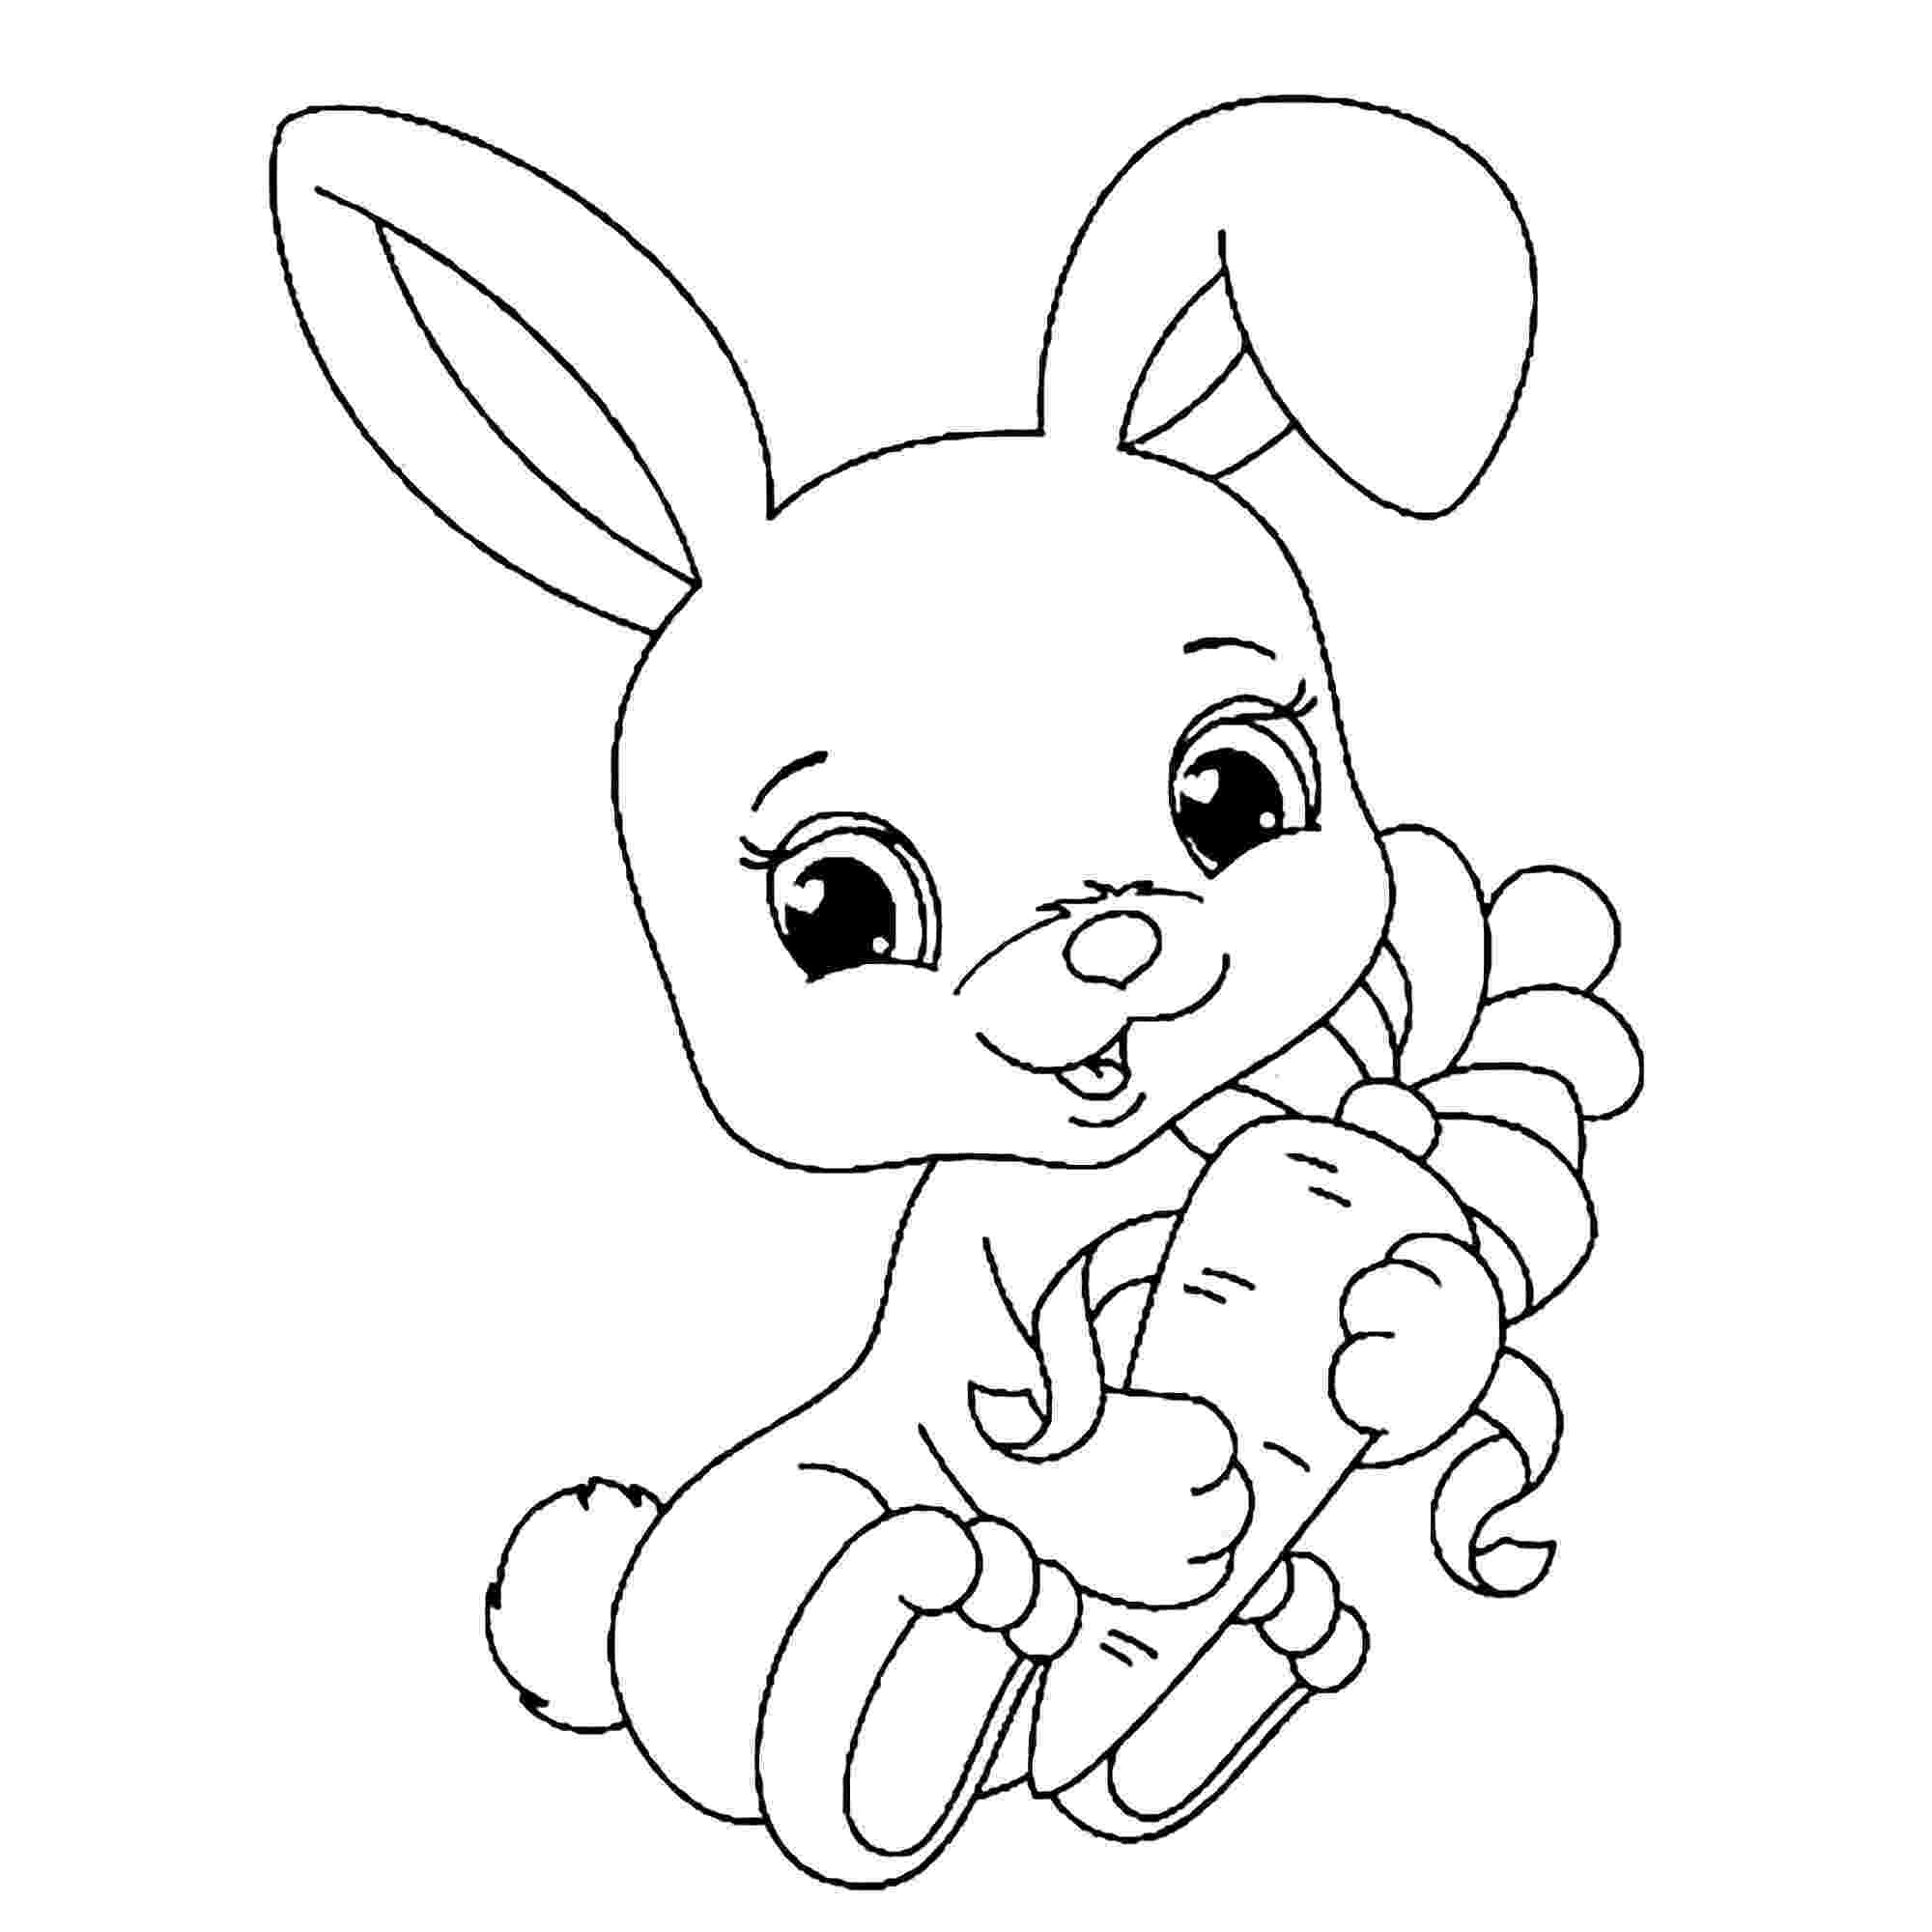 rabbit coloring pictures rabbit free to color for children rabbit kids coloring pages pictures coloring rabbit